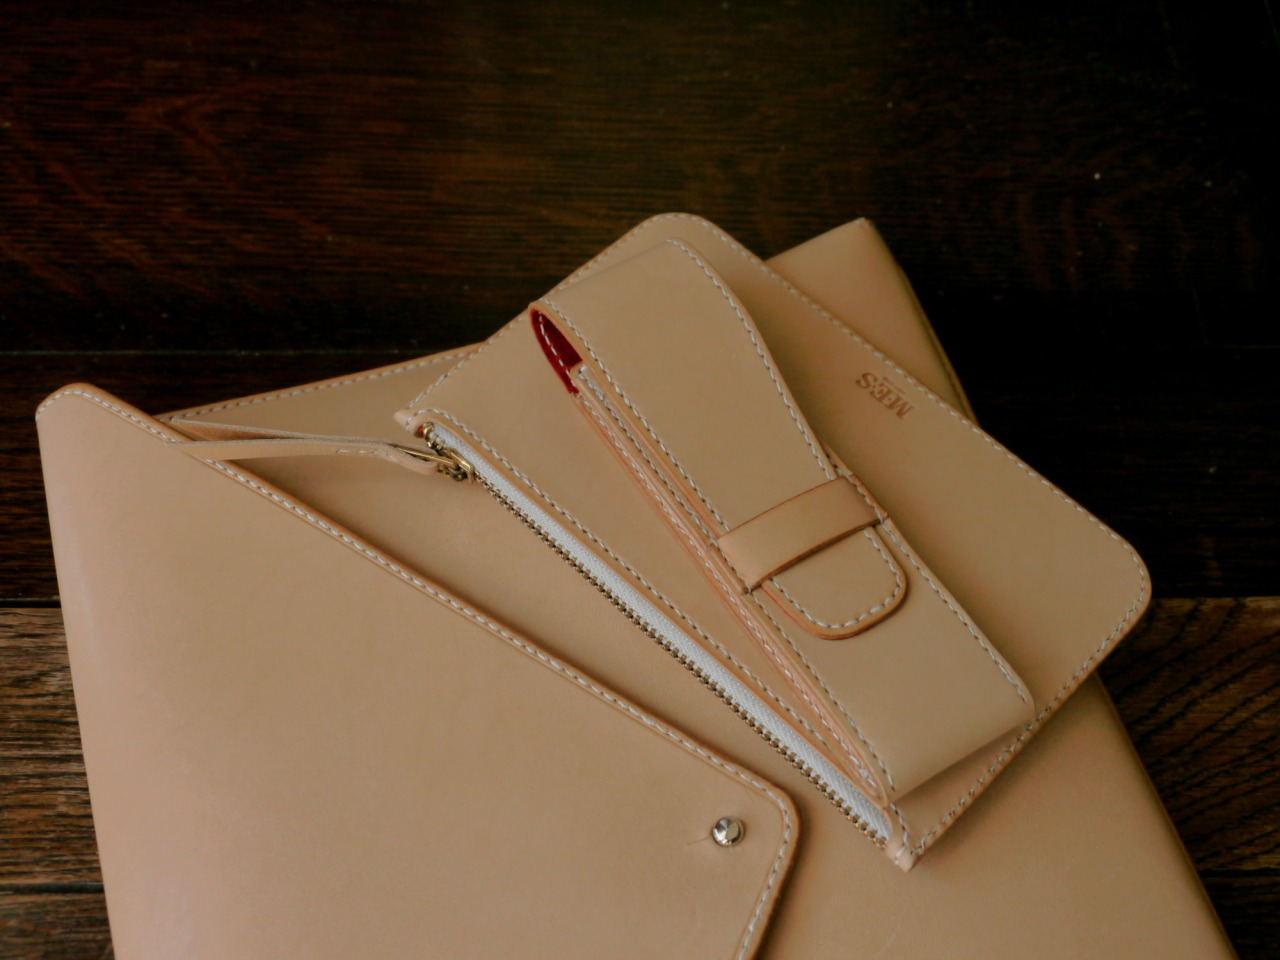 M.E.S new Mini Collection is now available to purchase online http://mesleather.com/specials/